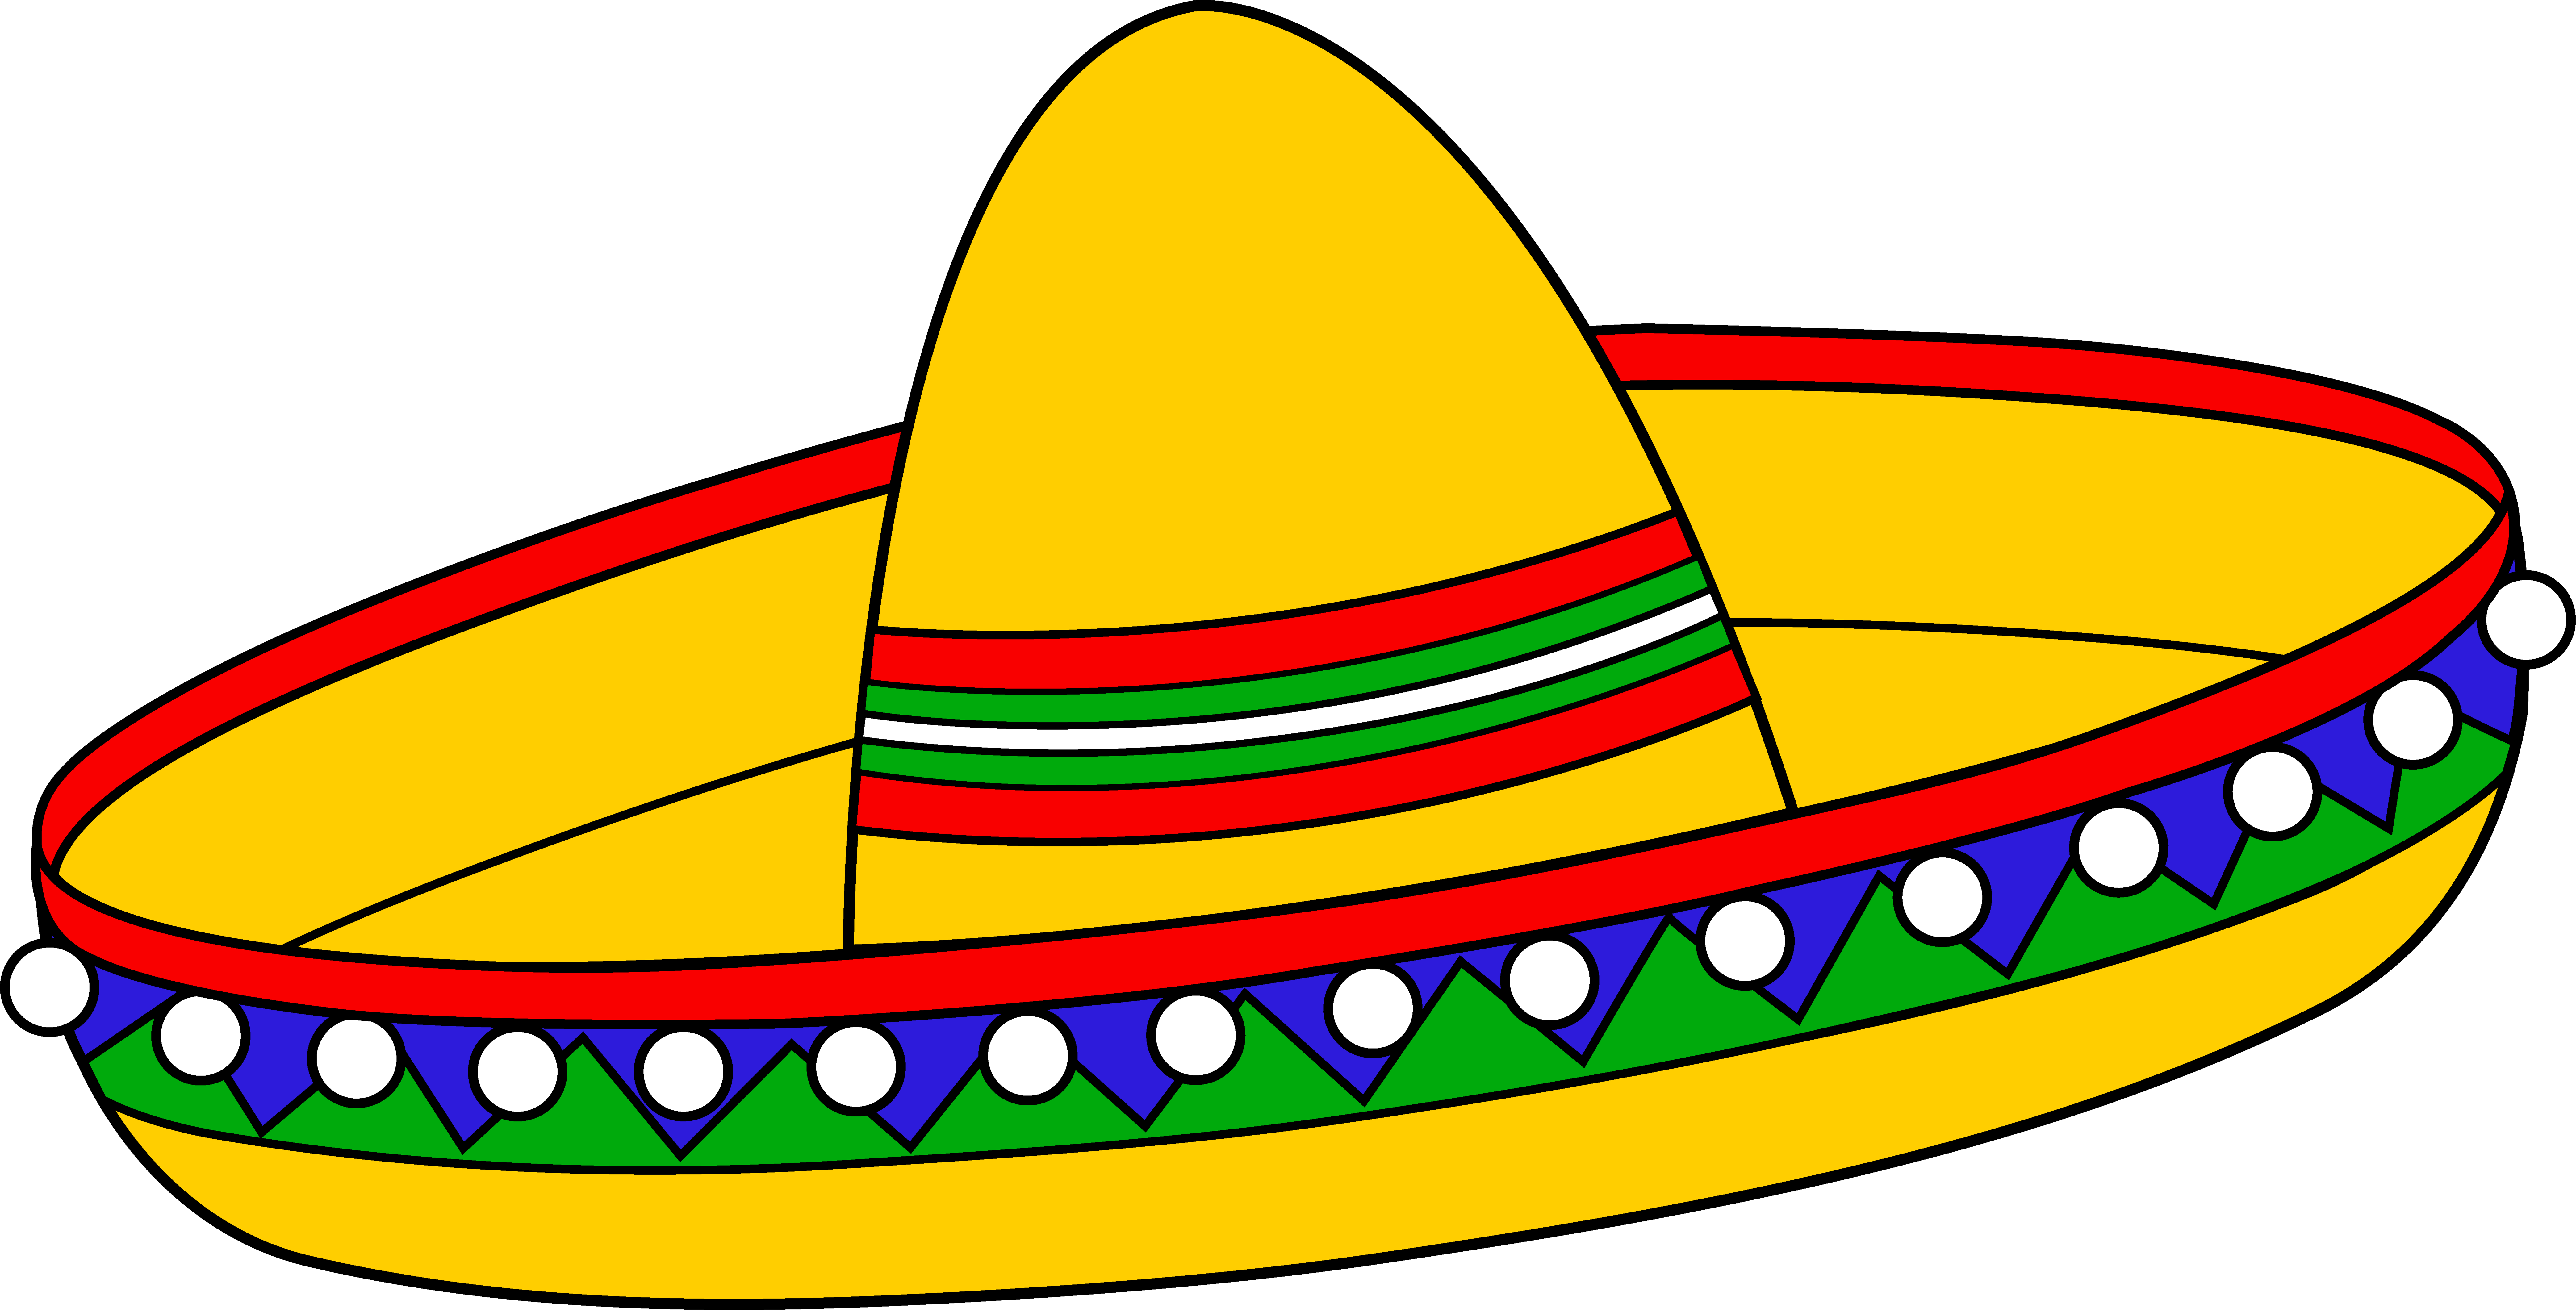 Colorful Mexican Sombrero Hat Free Clip Art Clipart - Free to use .